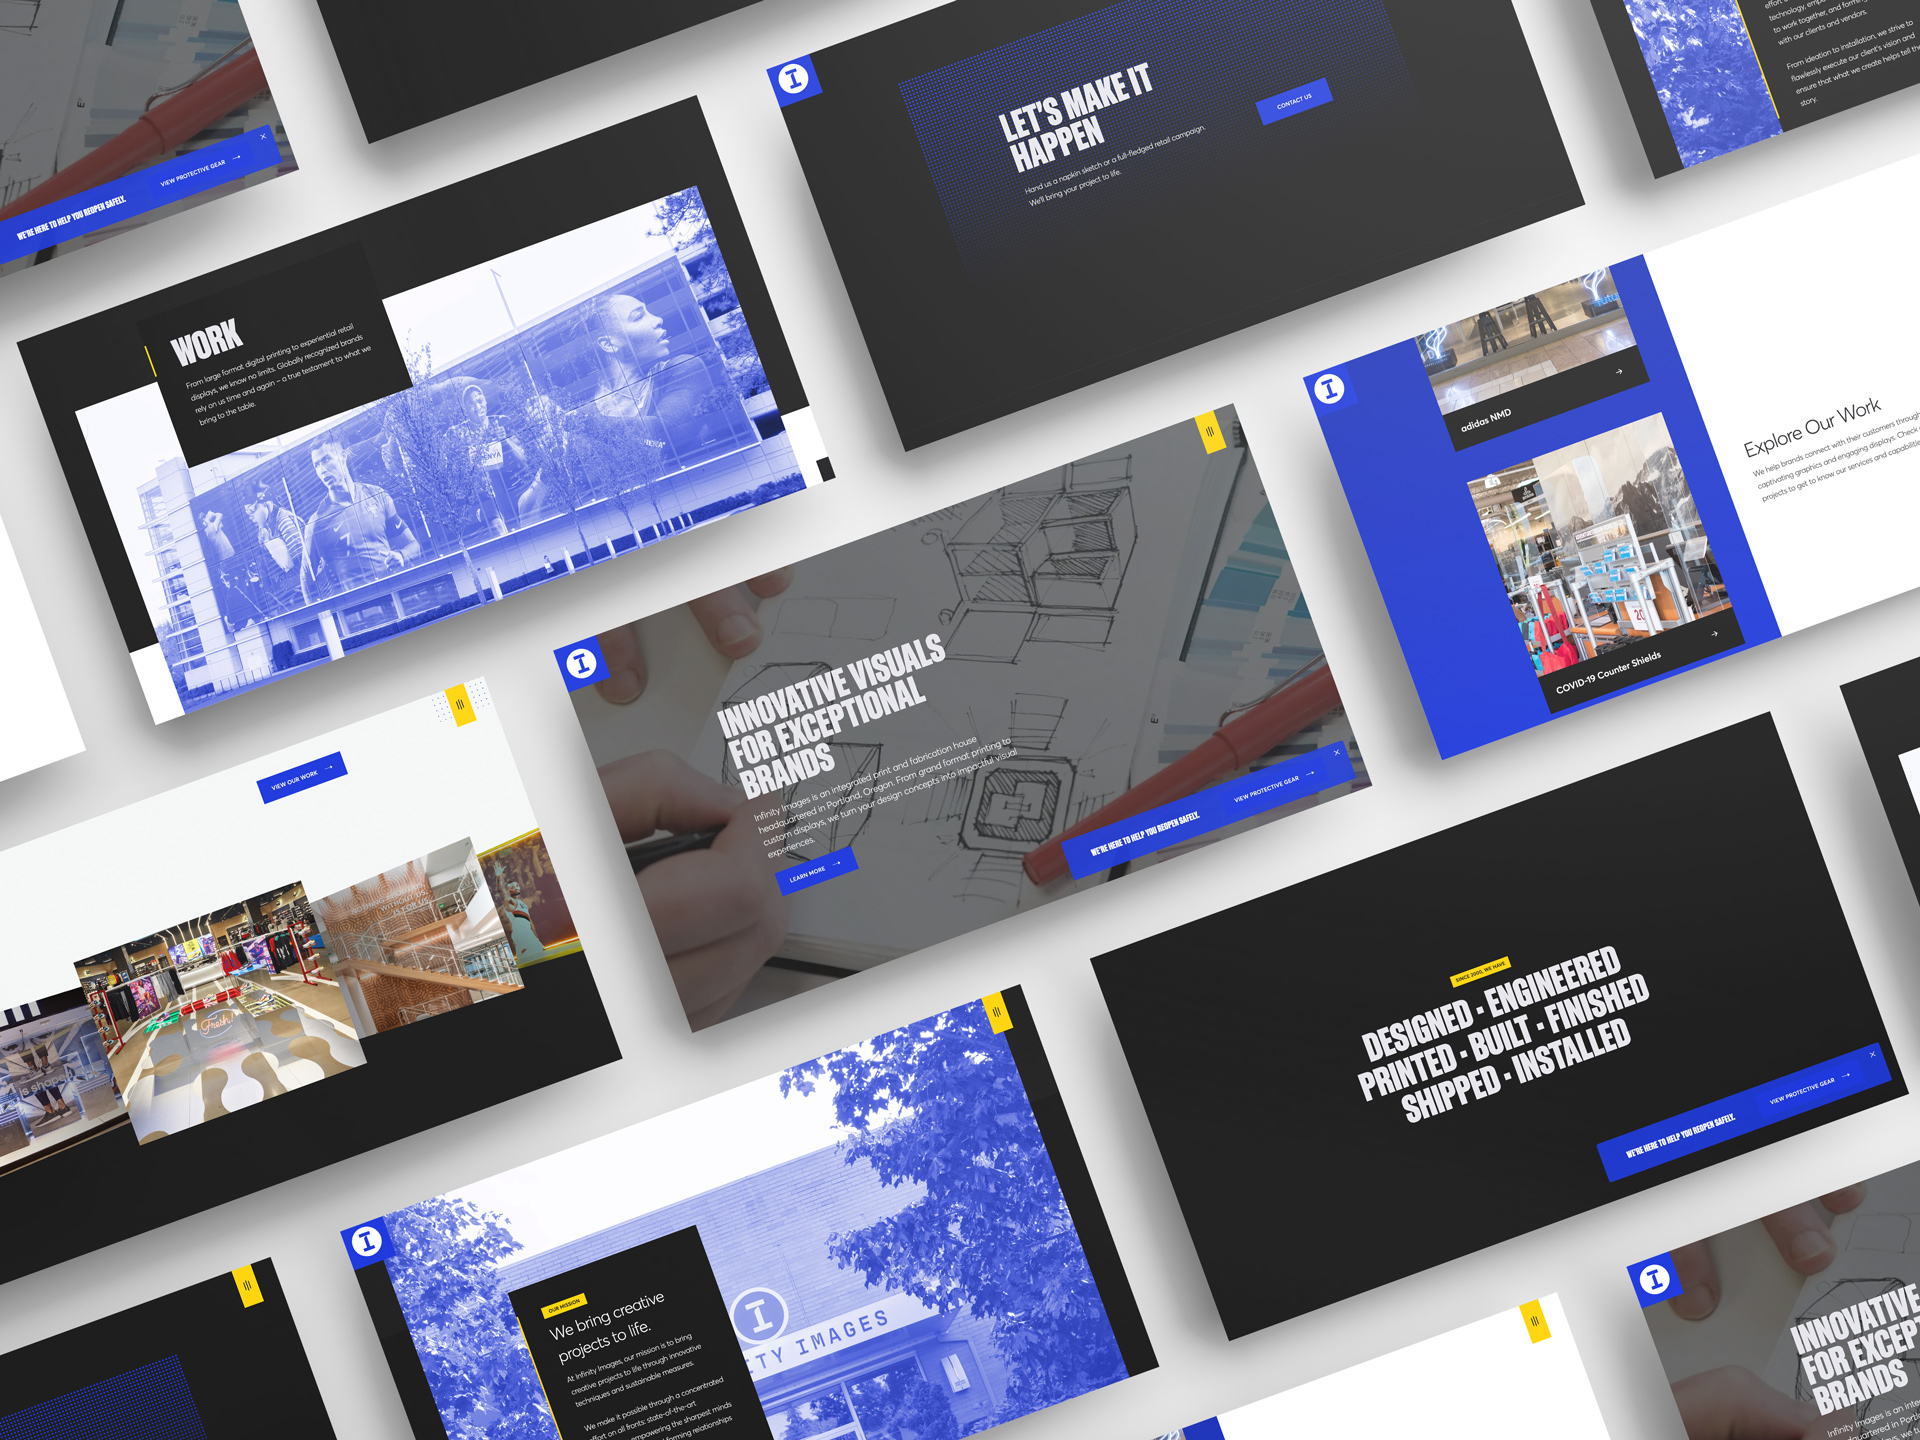 Web design project showcase